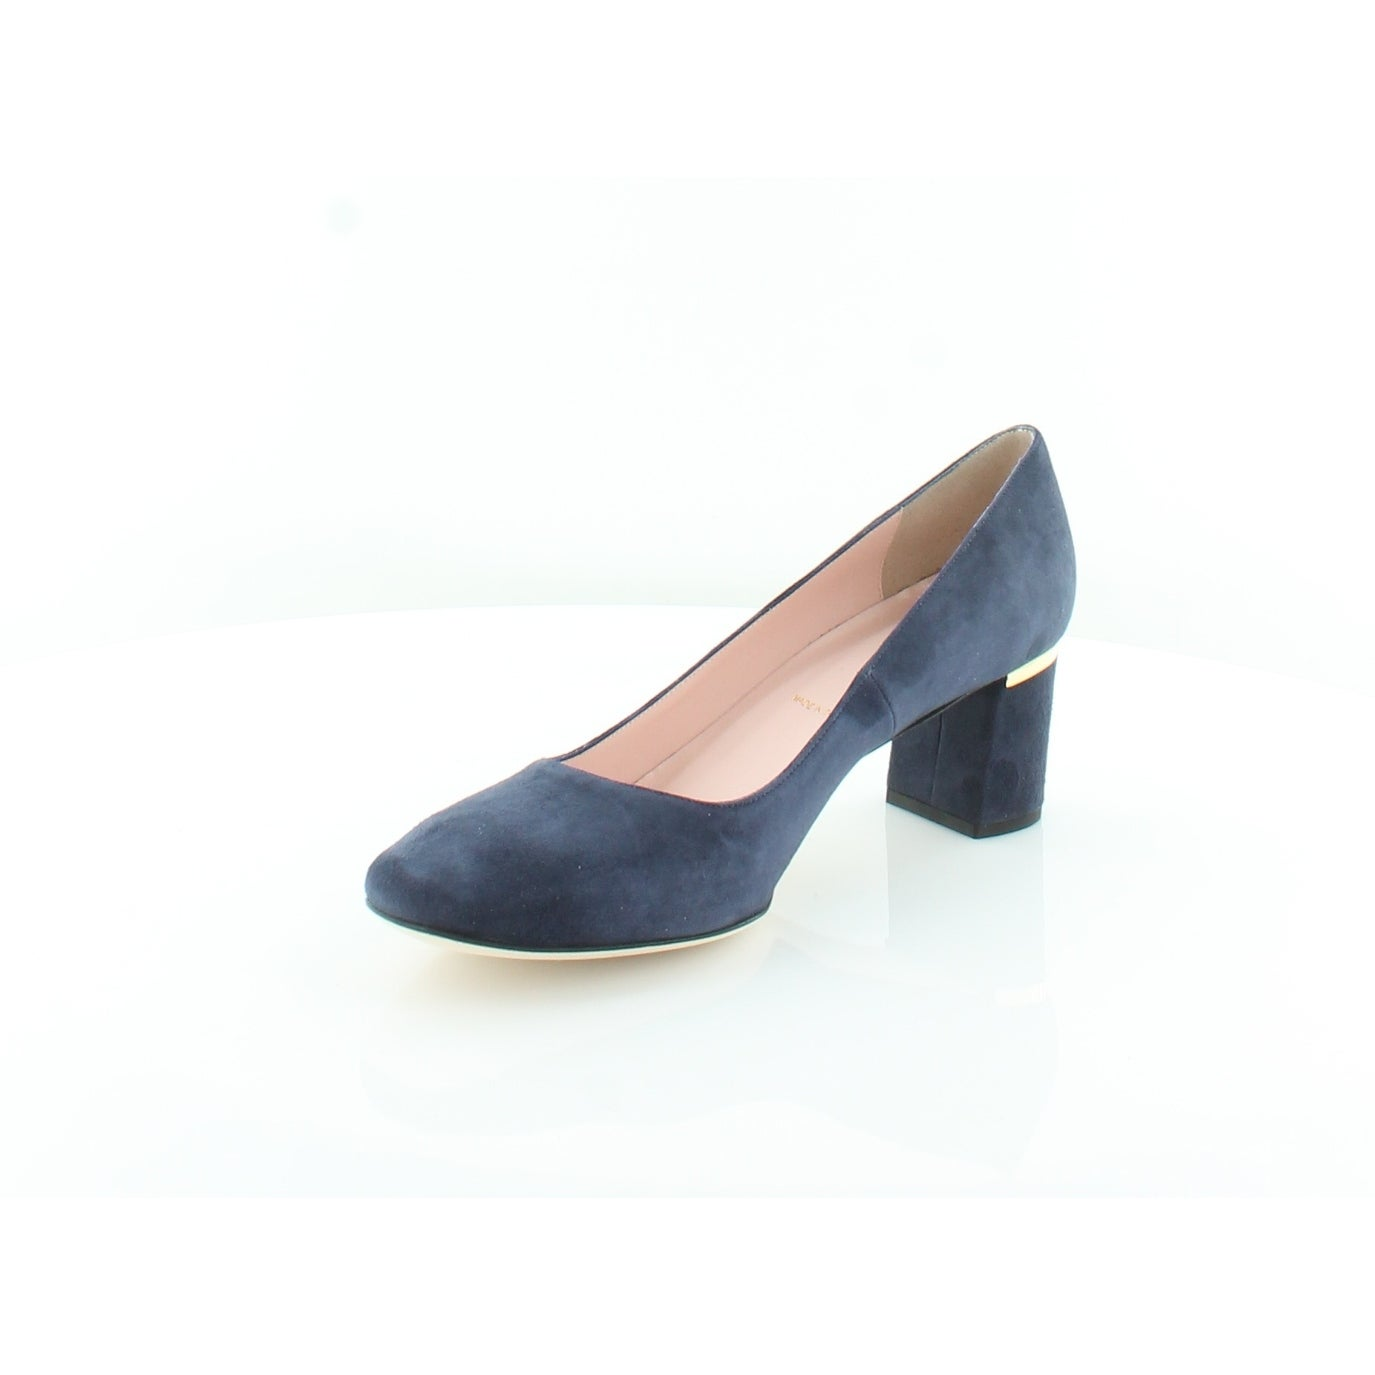 937a55134608 Shop Kate Spade Dolores Women s Heels Navy - Free Shipping Today -  Overstock - 25585635